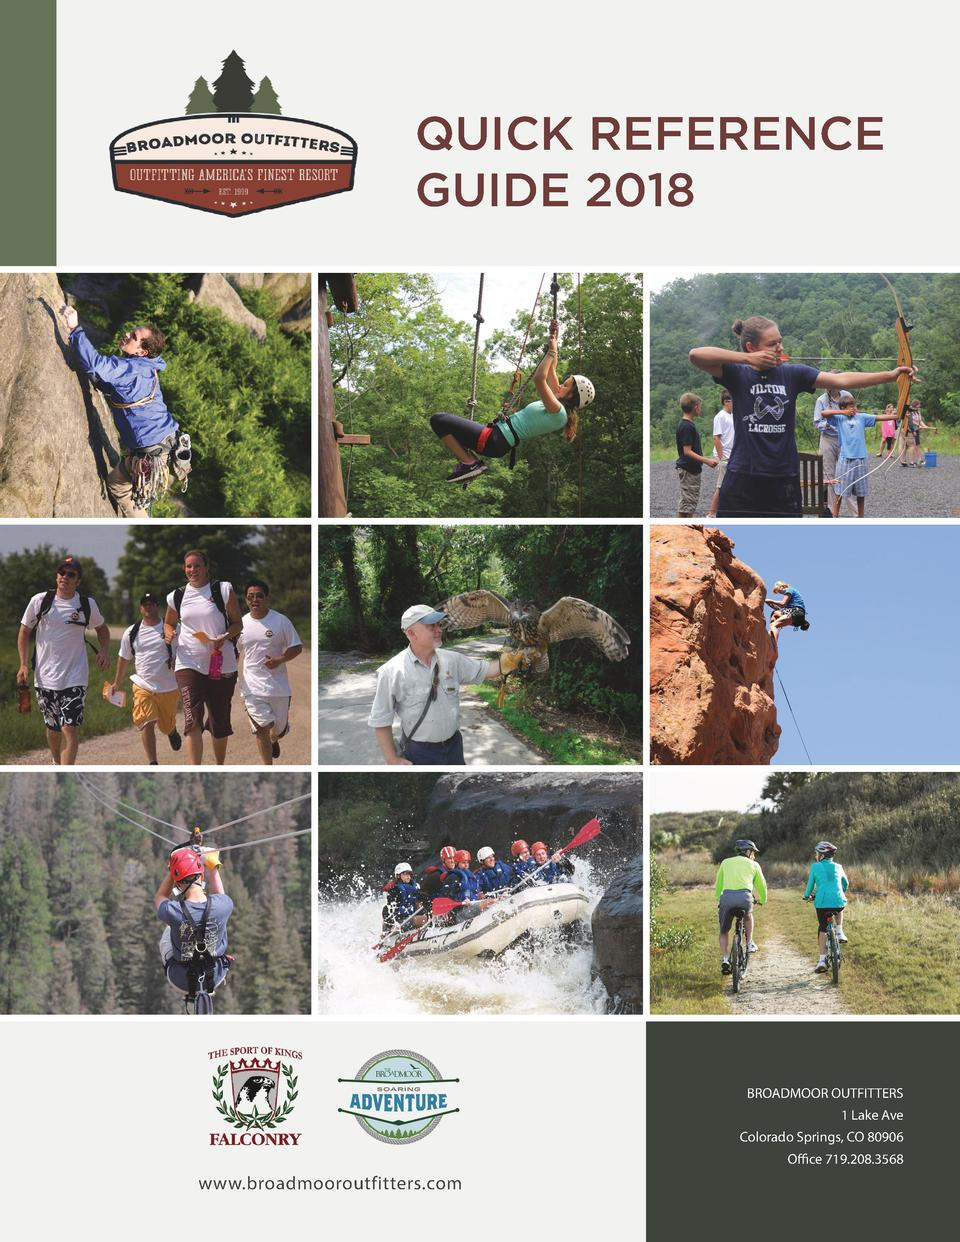 QUICK REFERENCE GUIDE 2018  BROADMOOR OUTFITTERS 1 Lake Ave Colorado Springs, CO 80906 Office 719.208.3568  www.broadmooro...